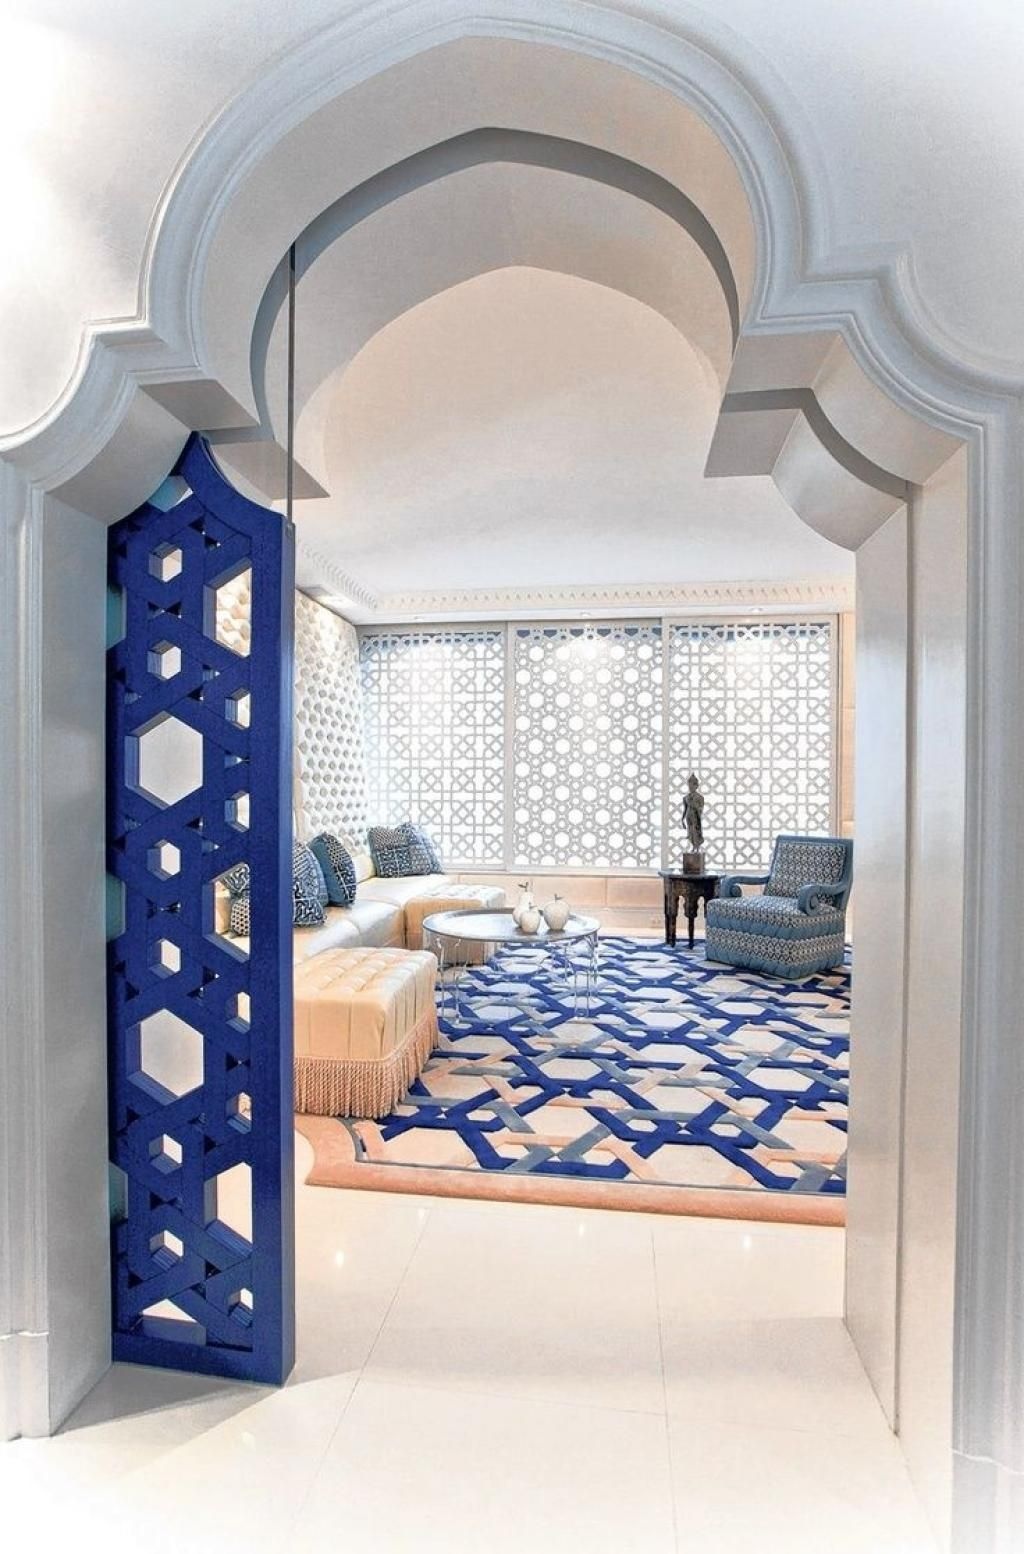 Moroccan interiors 9 zellige inspired white and blue moroccan decor the doors